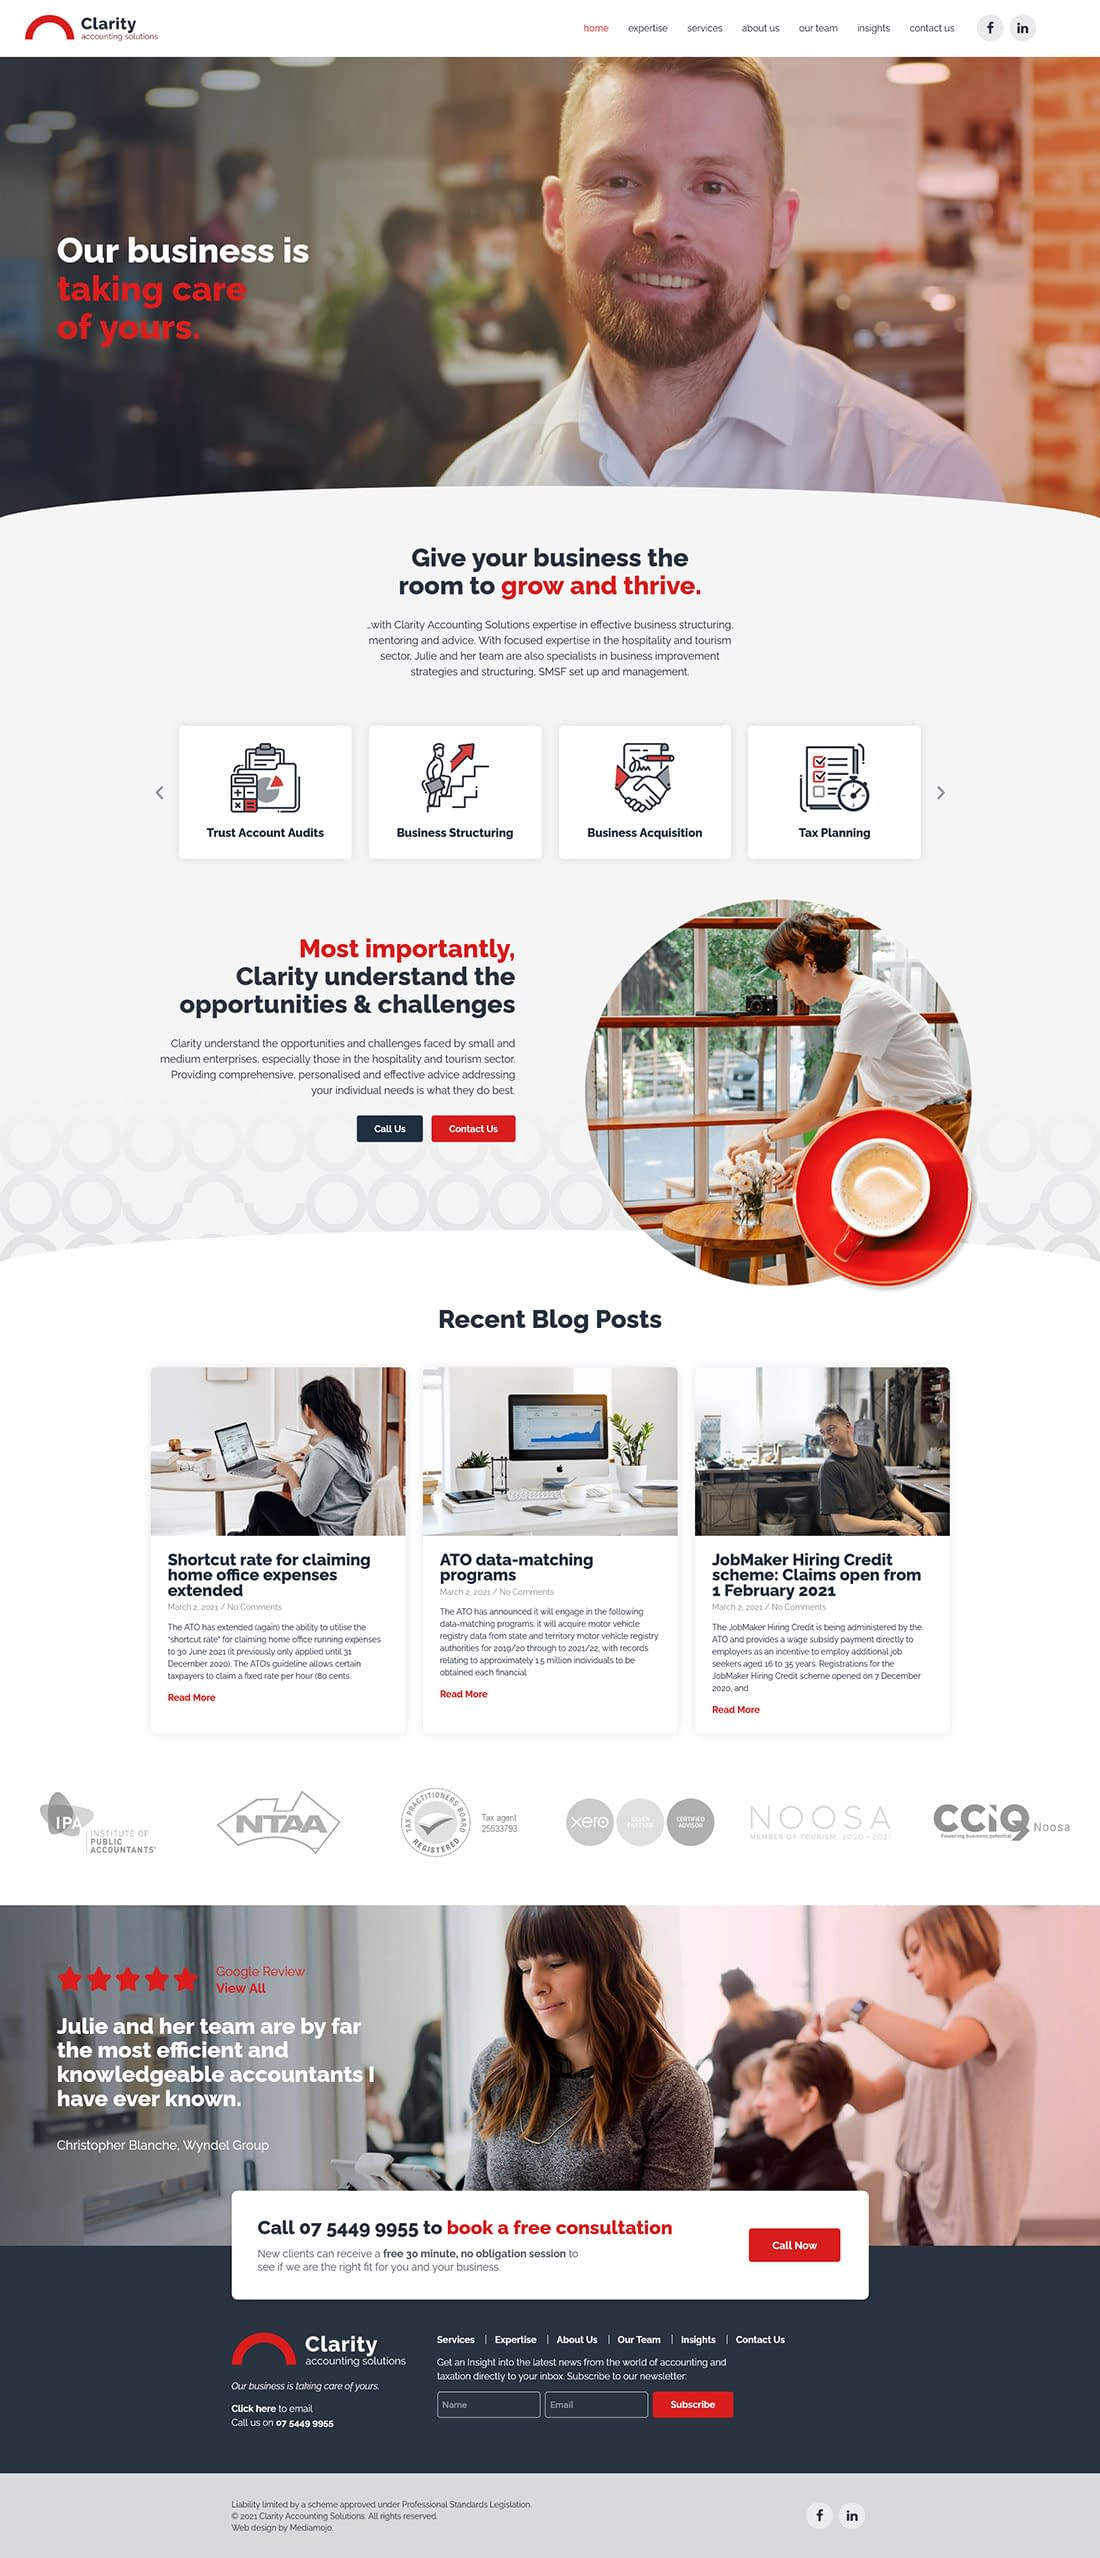 Clarity Accounting Solutions website design